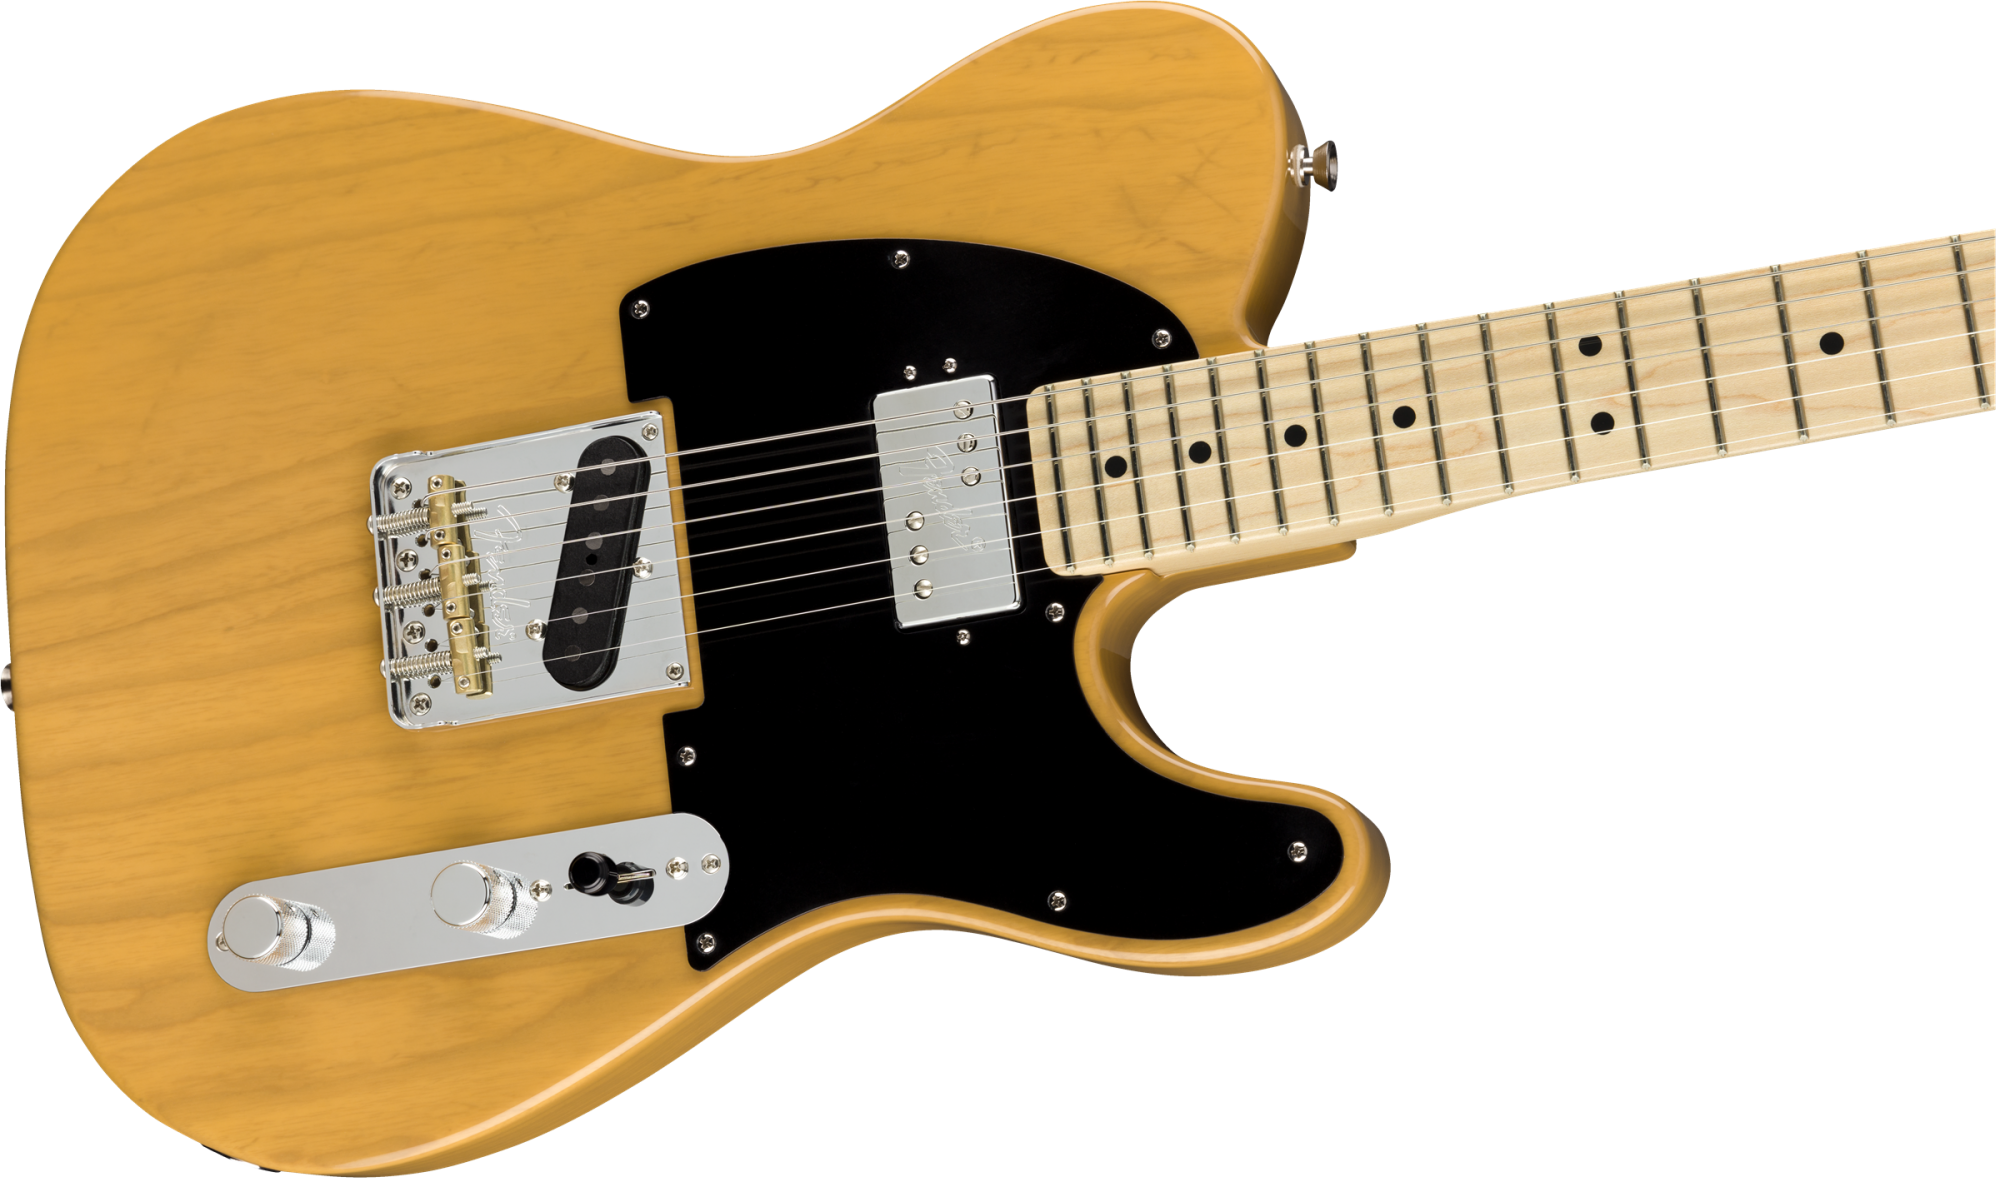 Fender 2018 Limited Edition American Pro Telecaster - Maple Fingerboard - Butterscotch Blonde